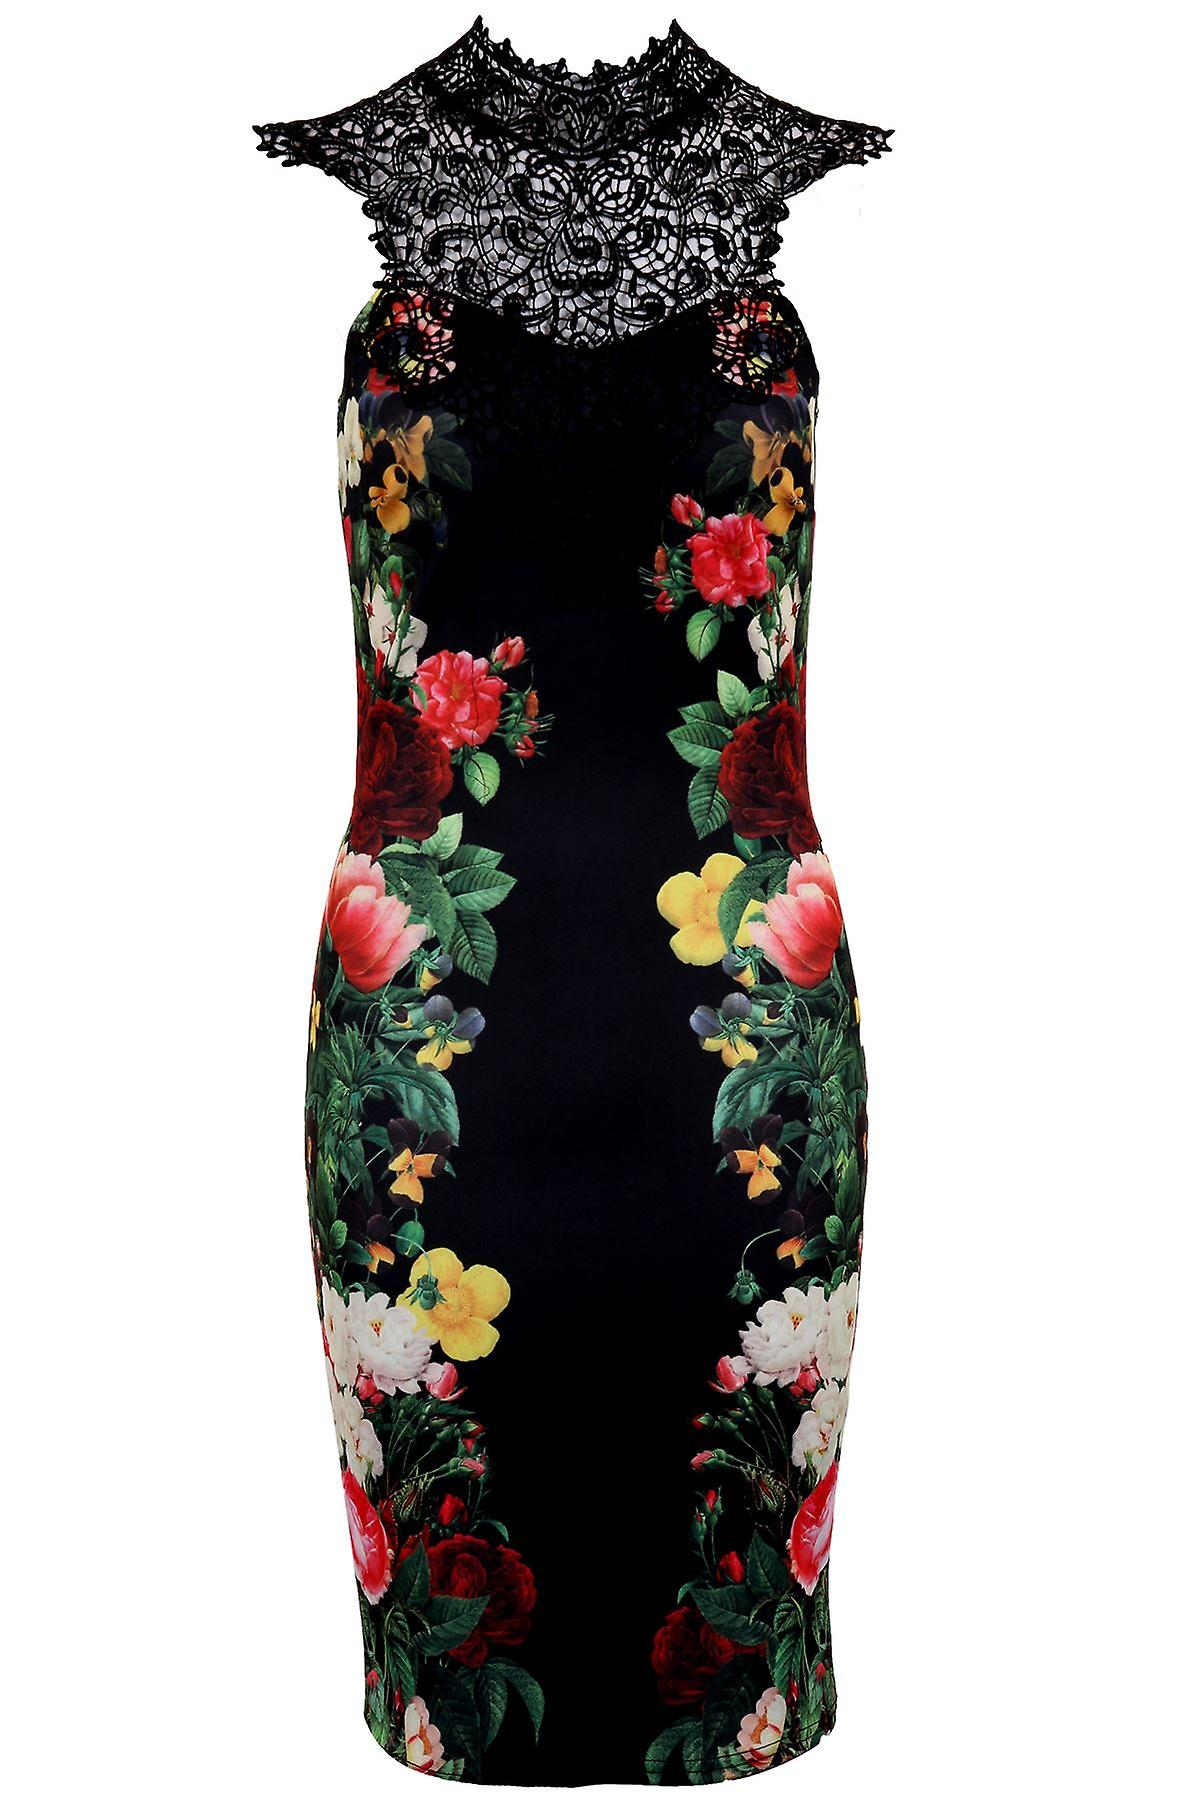 Ladies Sleeveless Crochet Neck Floral Print  Evening Party Women's Bodycon Dress